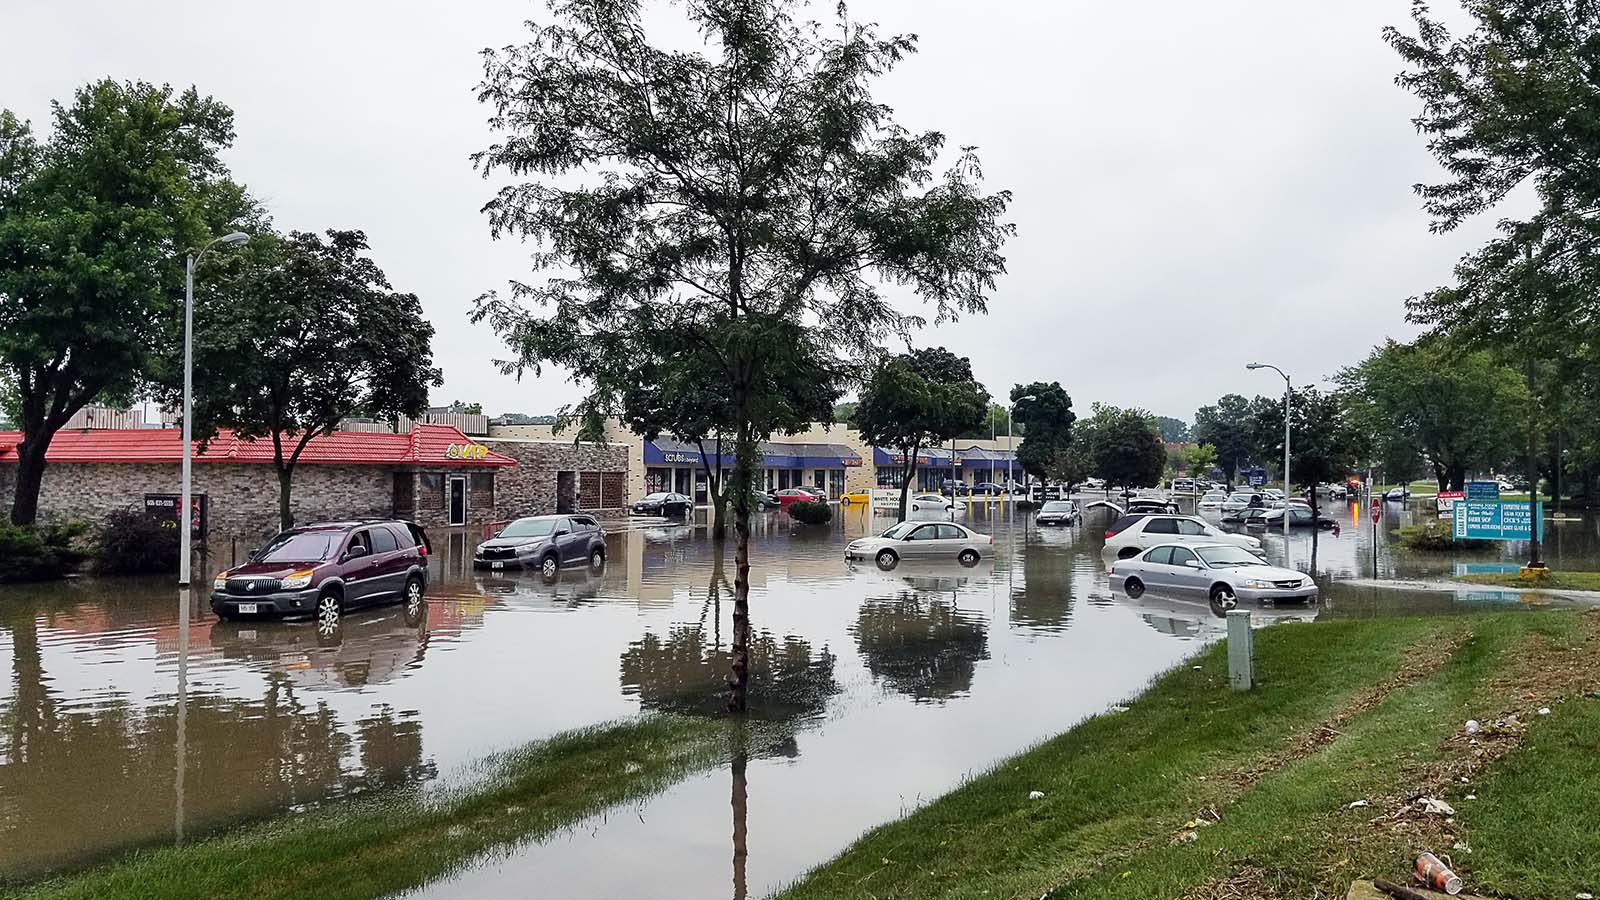 Flooding and Remediation Equipment